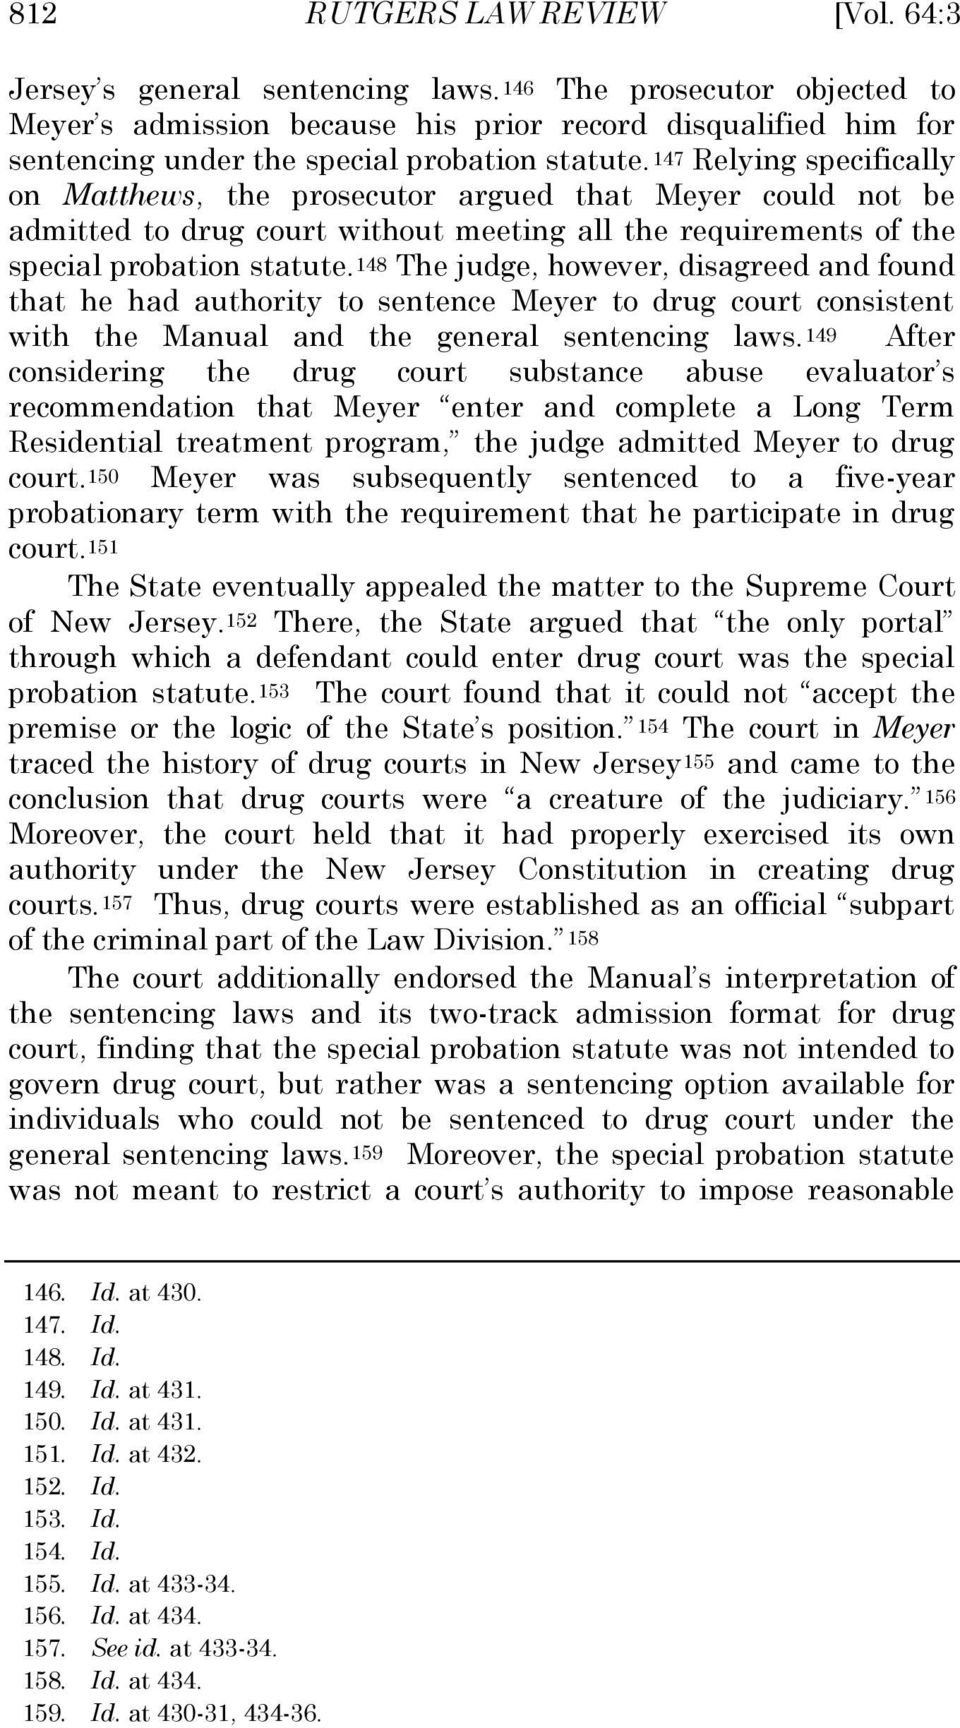 147 Relying specifically on Matthews, the prosecutor argued that Meyer could not be admitted to drug court without meeting all the requirements of the special probation statute.